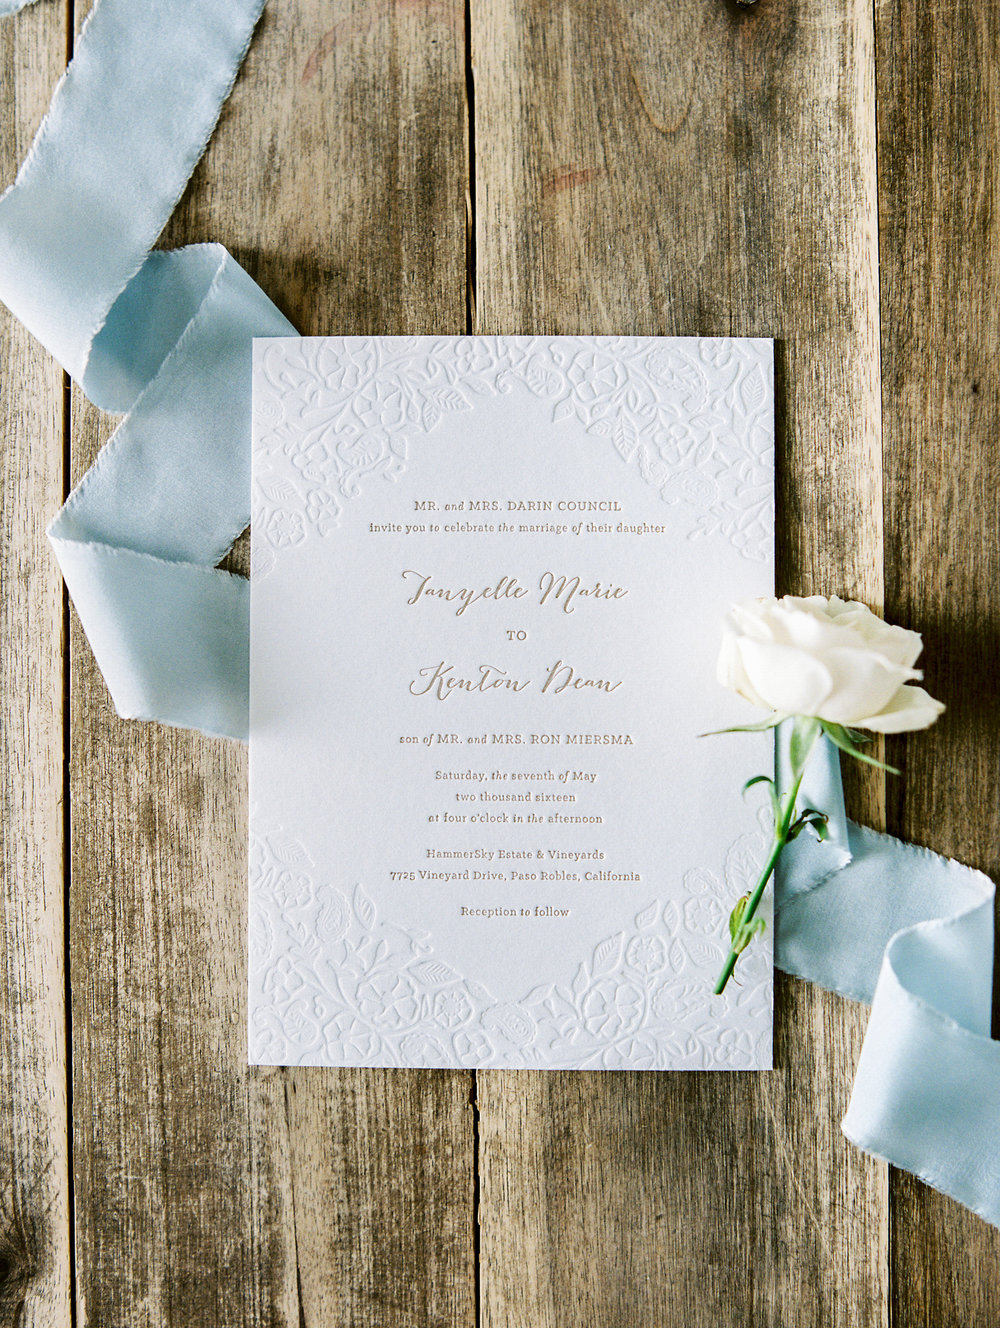 Invitation by Paper & Type, photographed by Rachel Solomon.